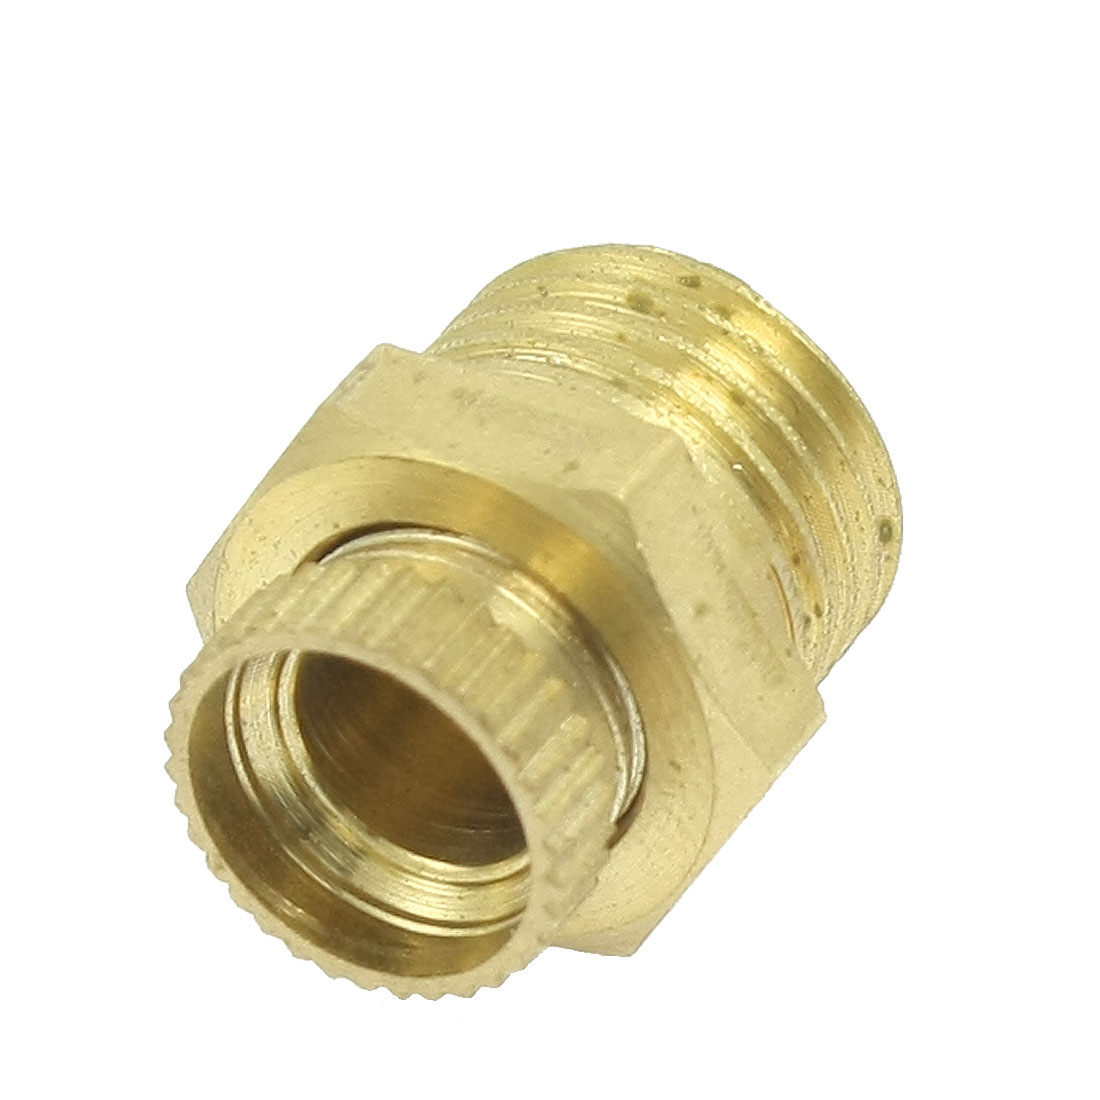 "PT 1/4"" Male Threaded Metal Water Drain Valve for Air Compressor"